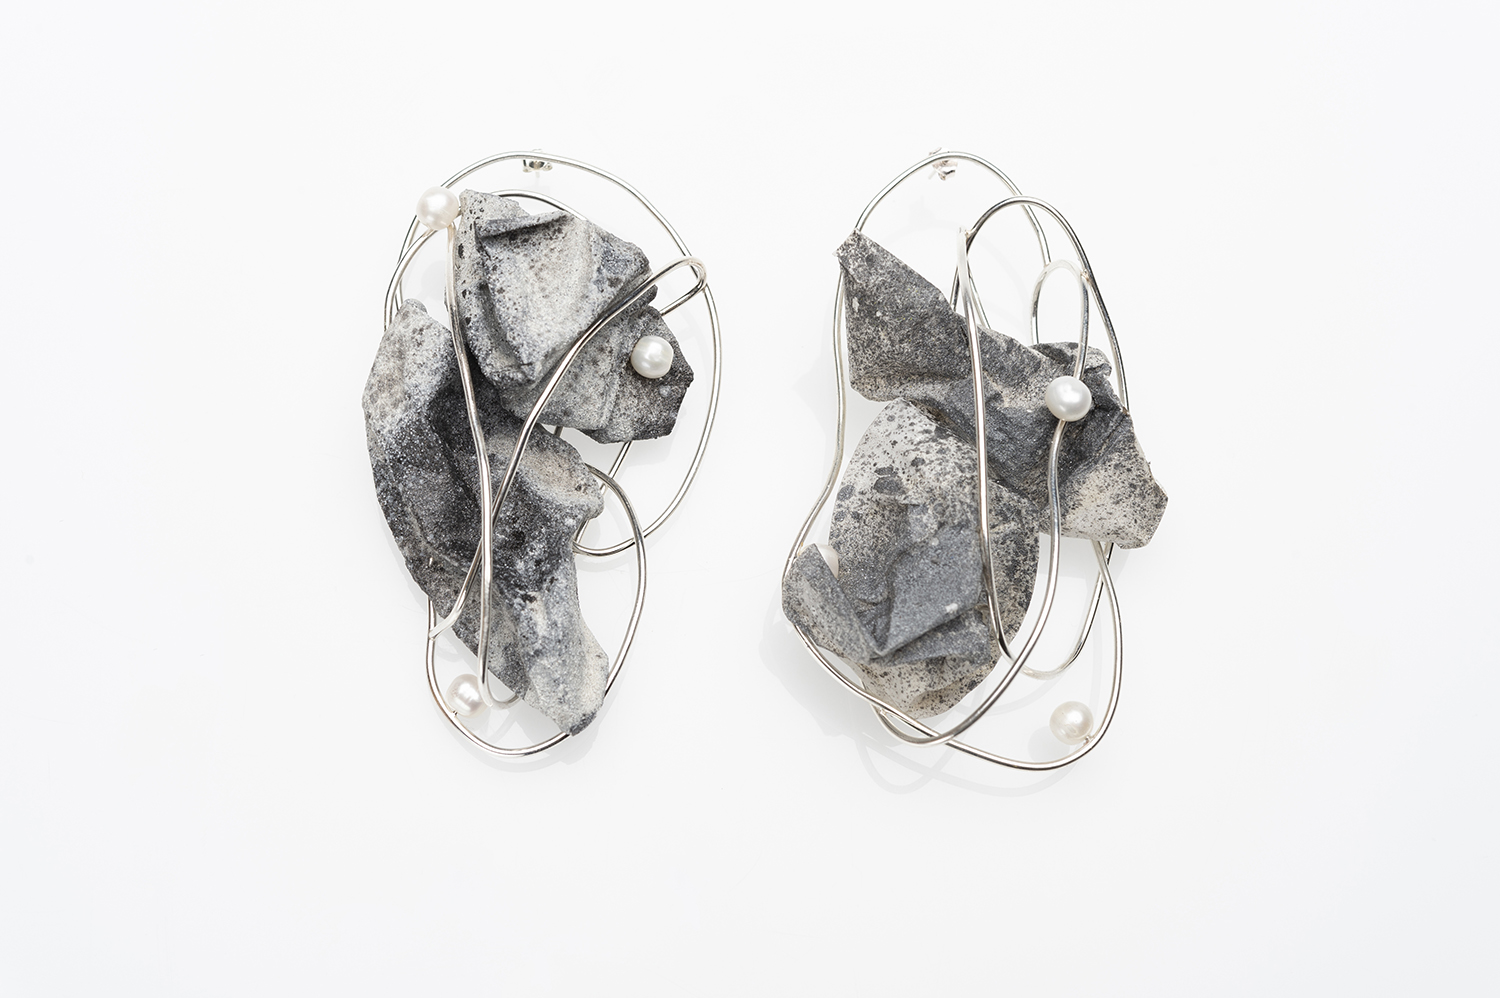 Earrings designed by Yue Jiang